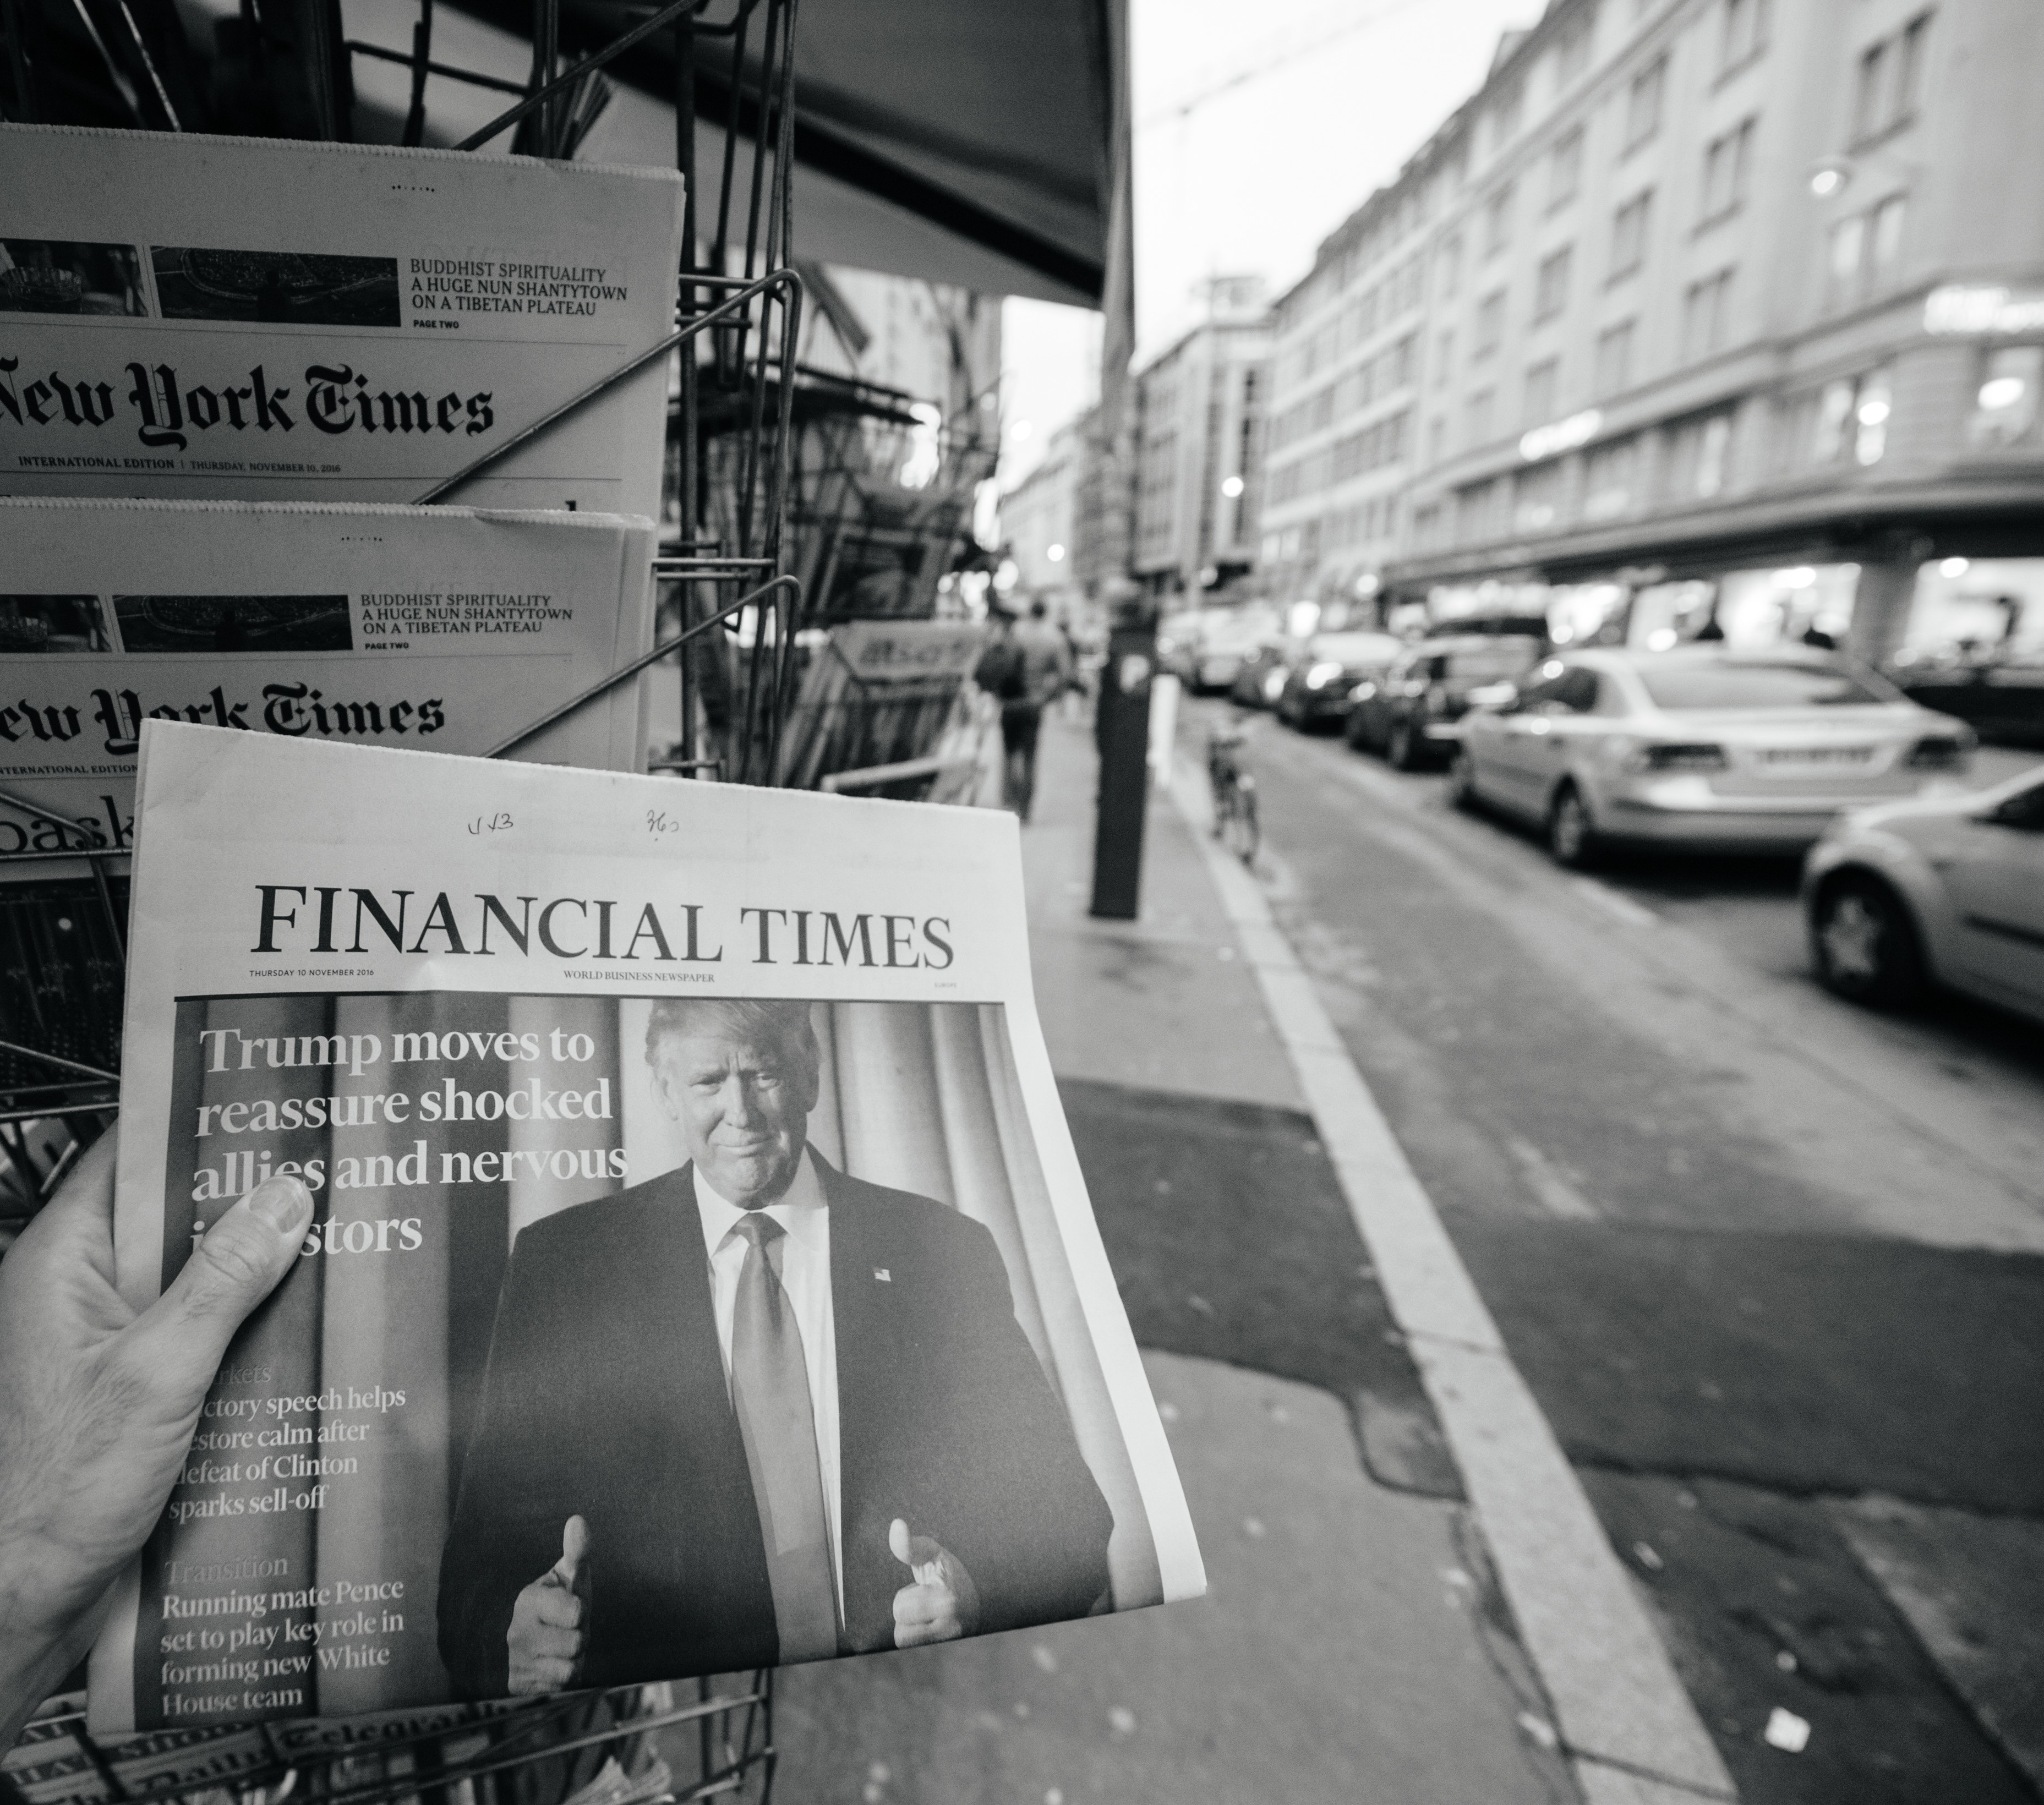 Trump Tax Plan S Pass Through Tax Break Would Provide: What Do President Trump's Policies Mean For Your Finances